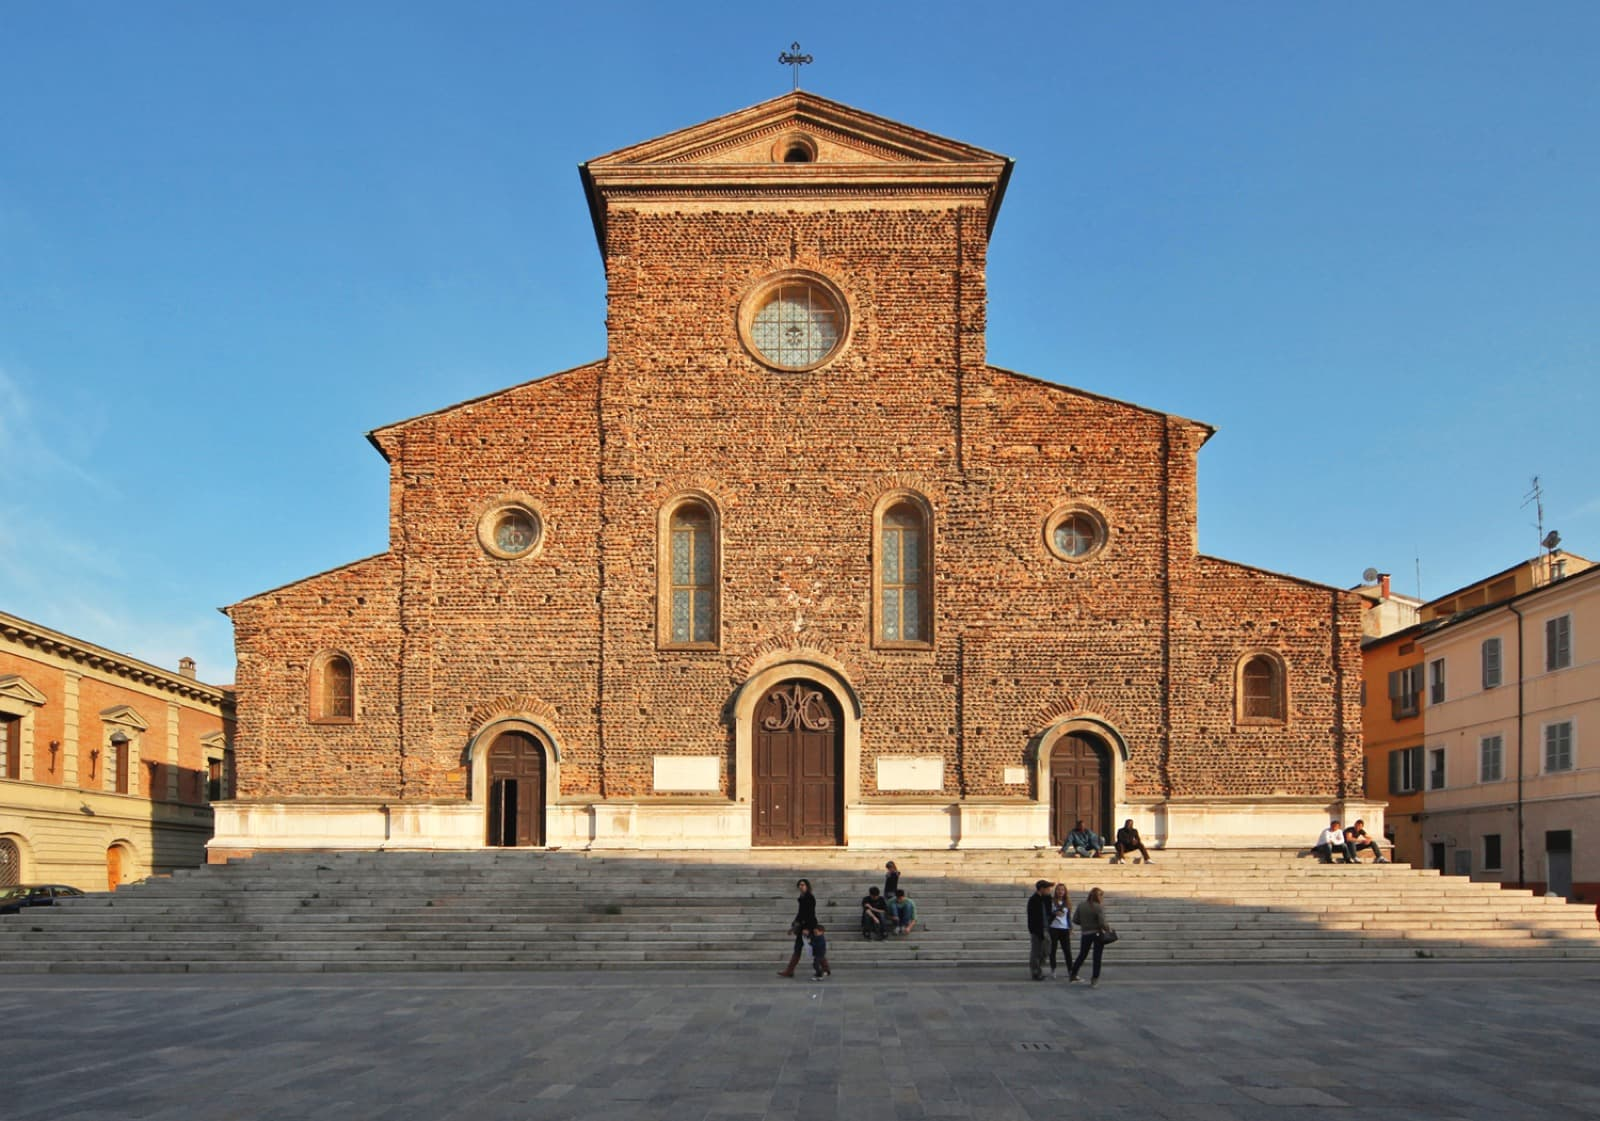 Faenza's Cathedral